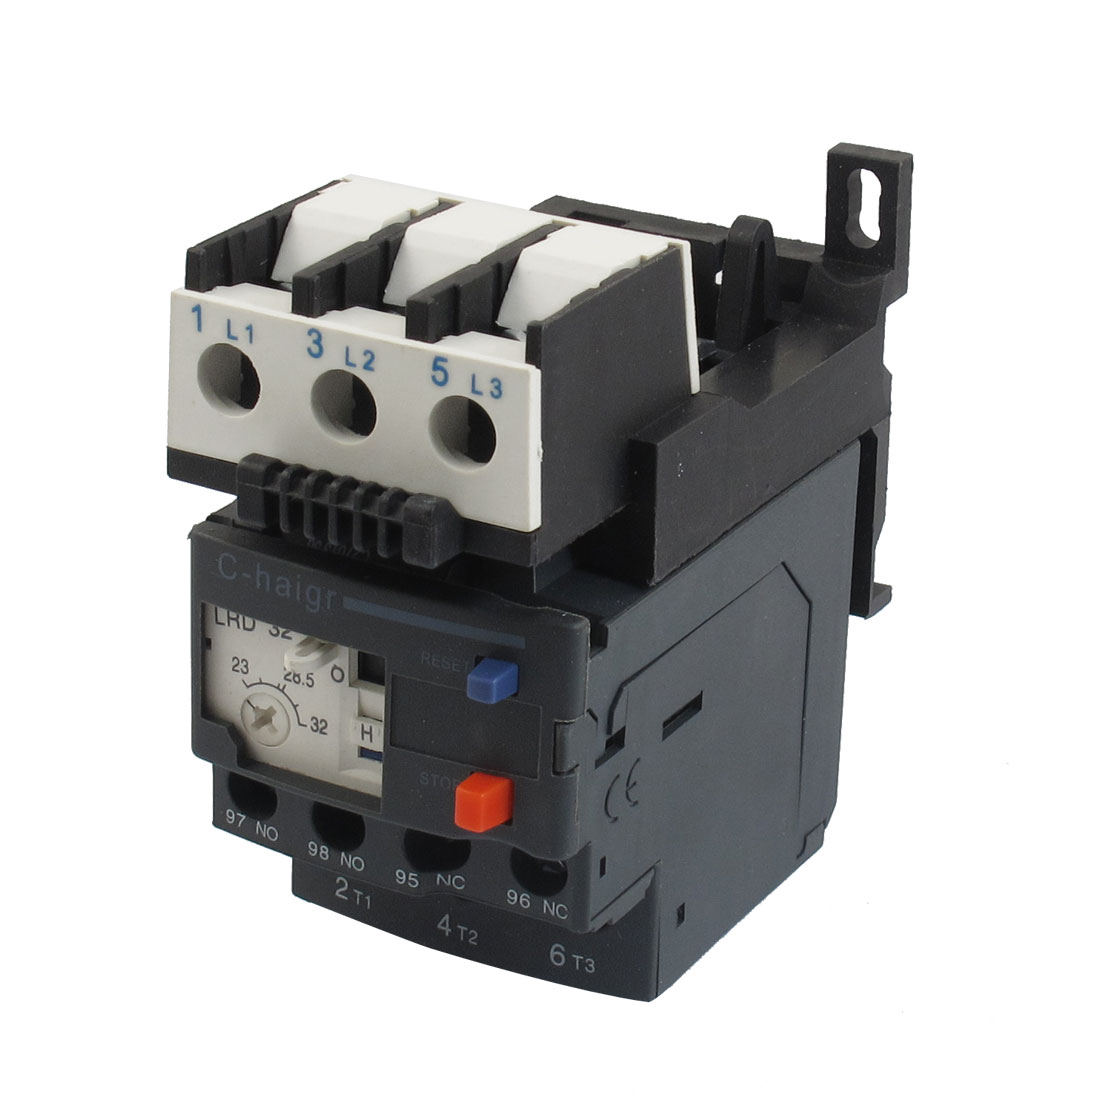 JR28-25 32A 690V 1NO 1NC 3 Phase Motor Thermal Overload Relay w Socket